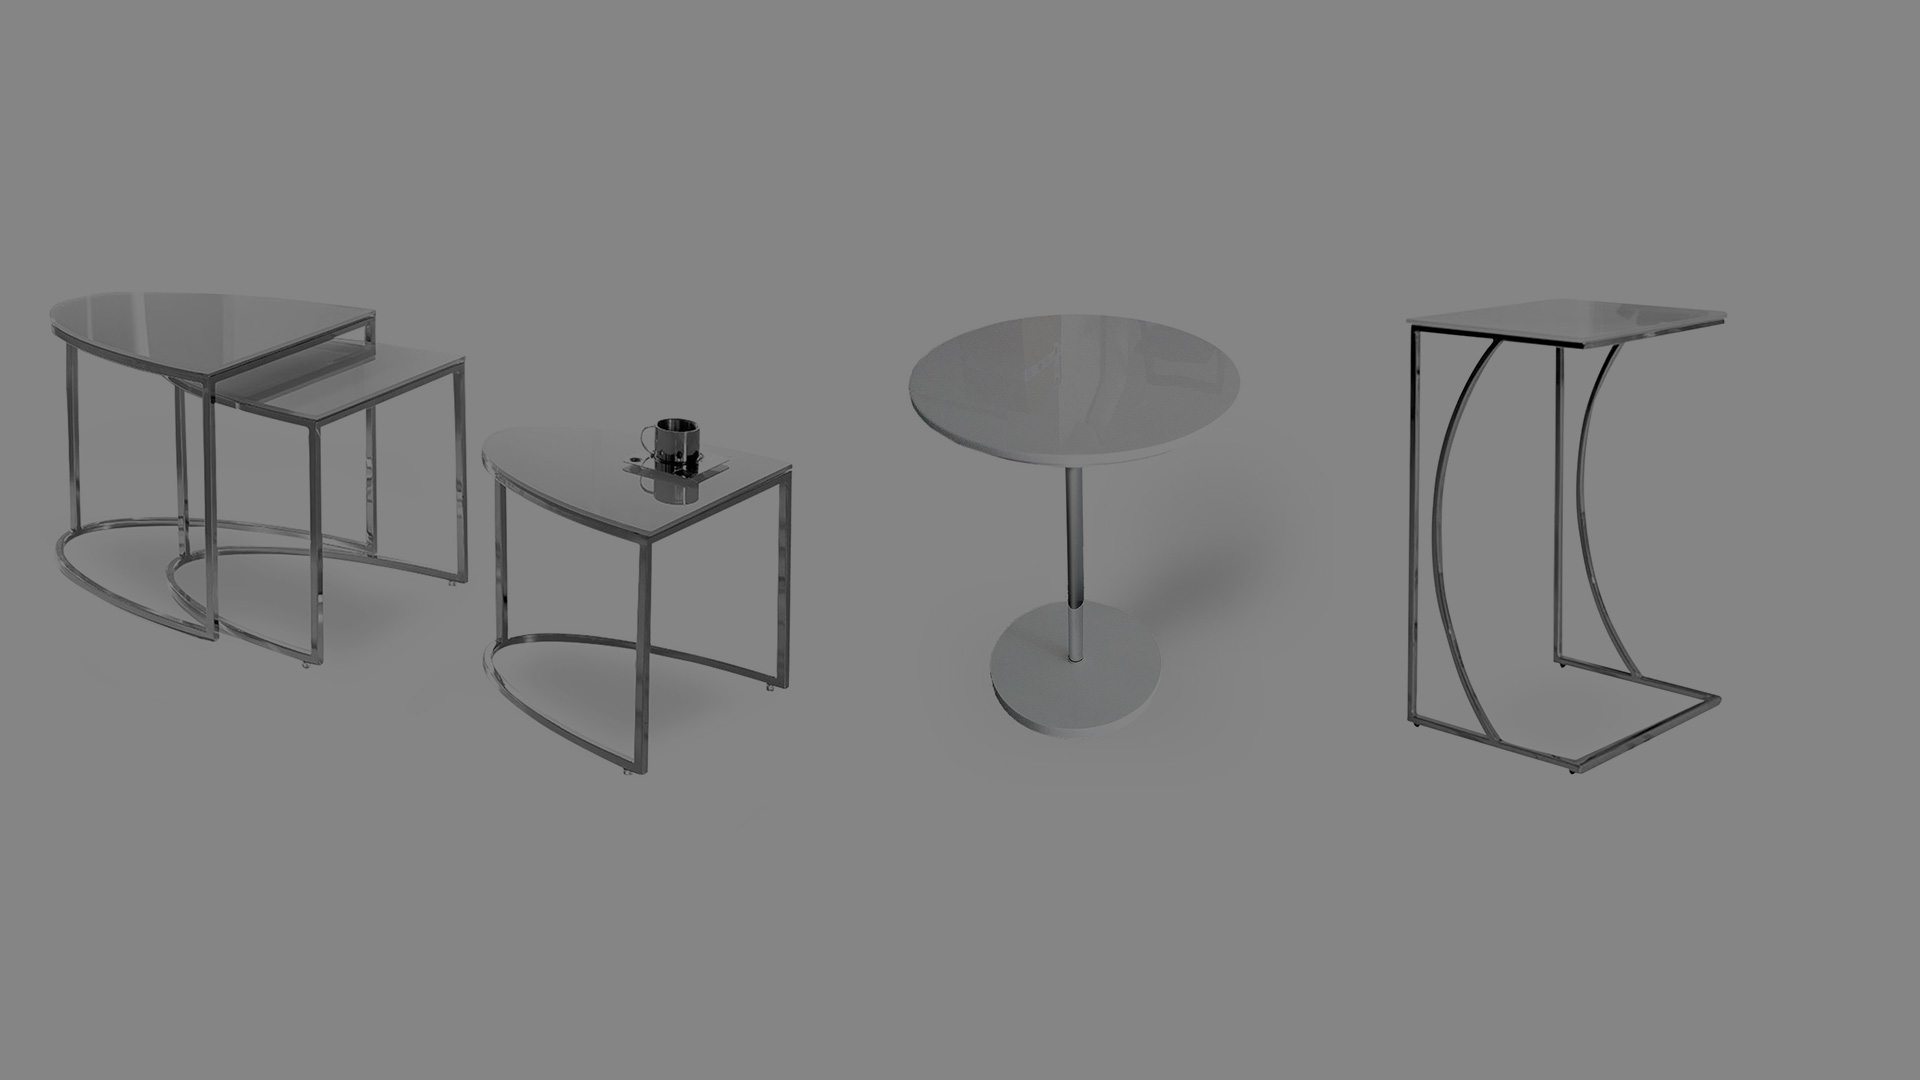 small tables accent expand furniture and side for space living white table black windsor chairs miniature desk lamp concrete cocktail perspex carsons threshold wood metal made usa